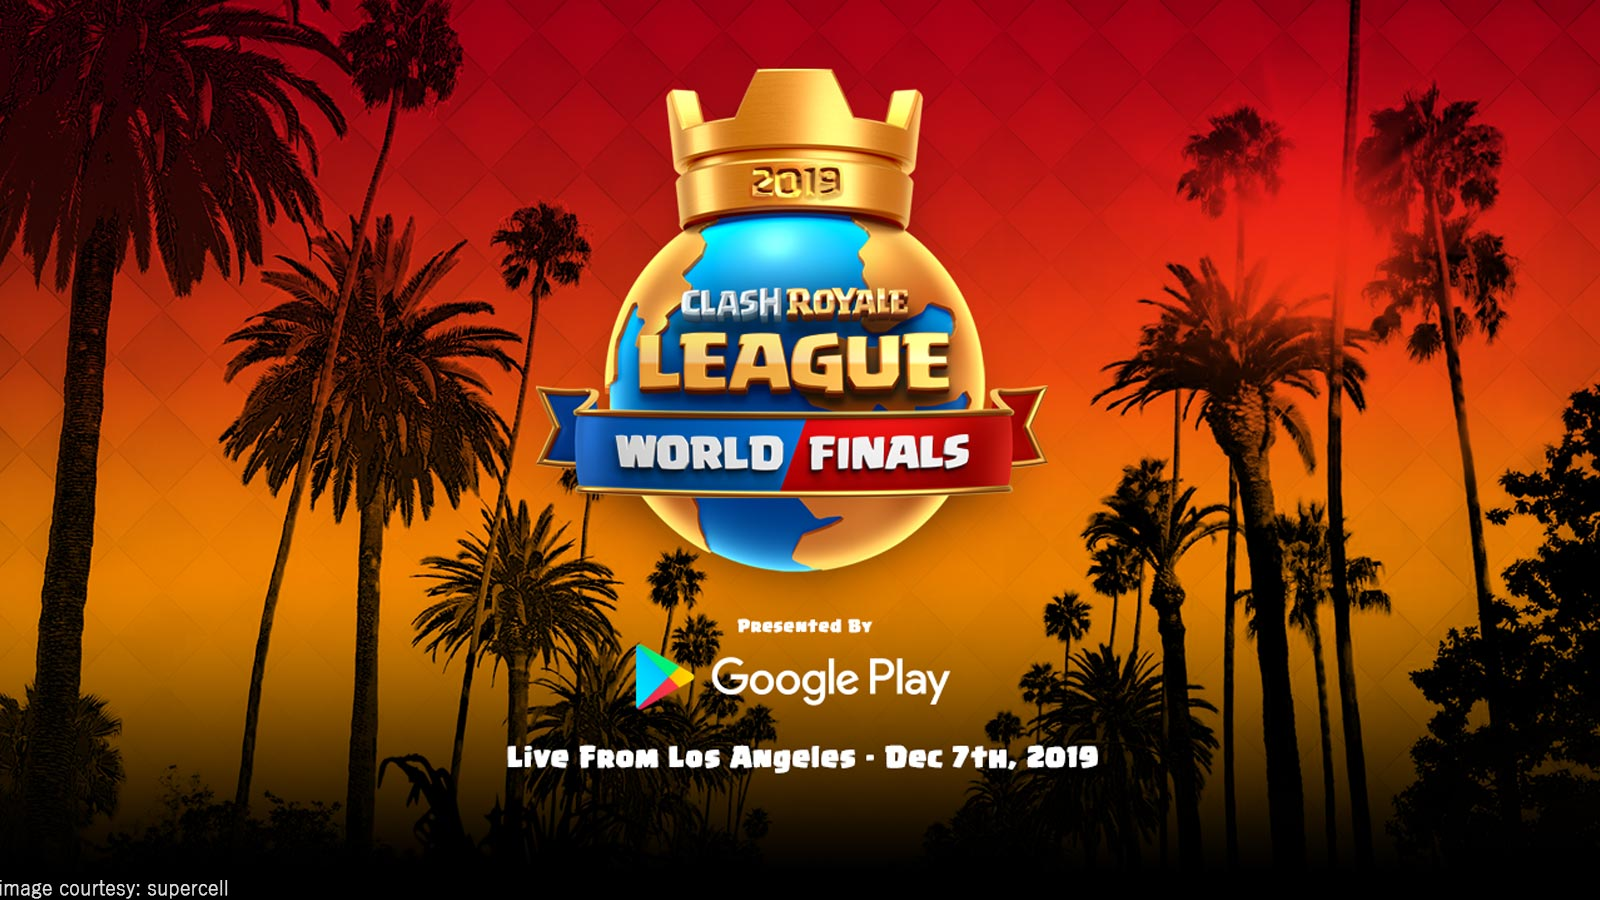 $400,000 Up For Grabs at the Clash Royale League World Finals